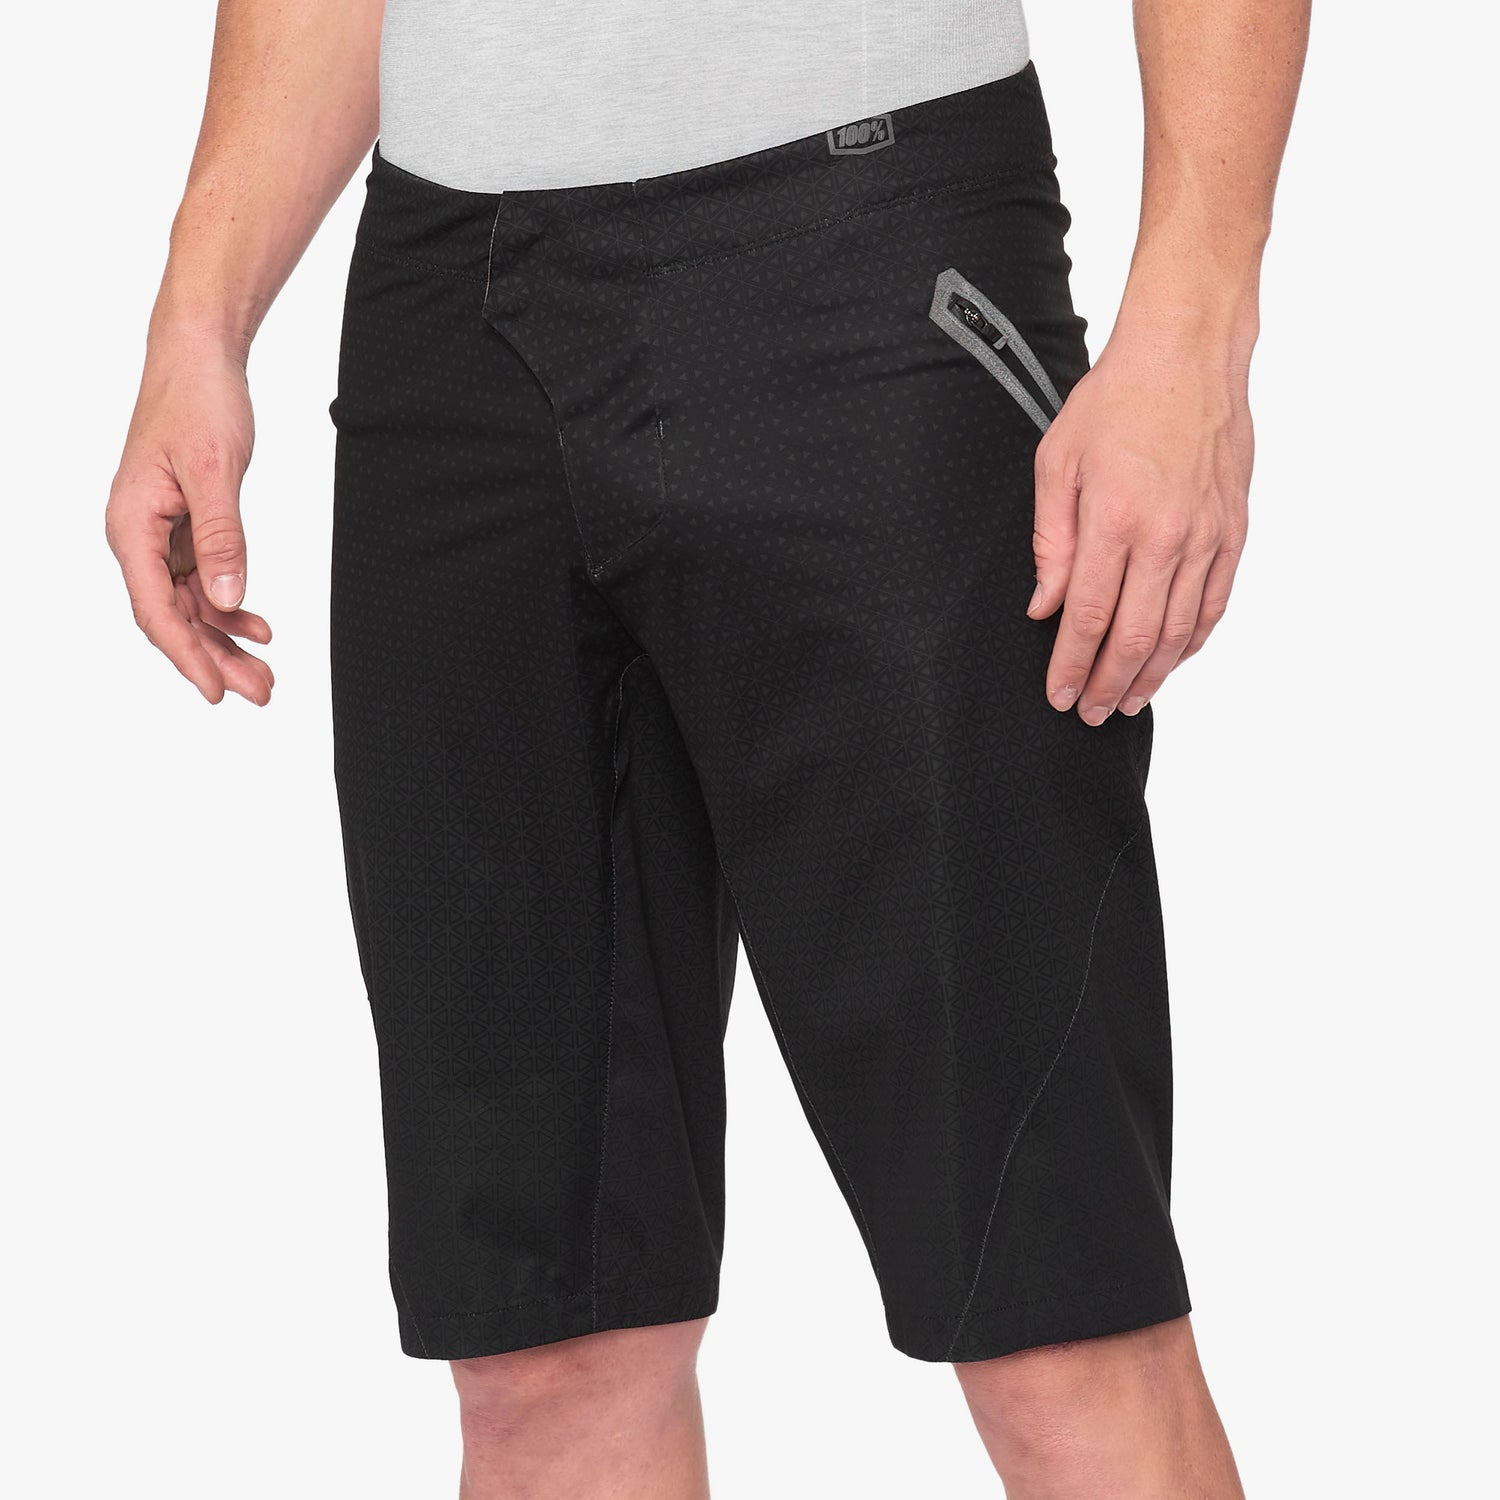 HYDROMATIC Short - Black Fade